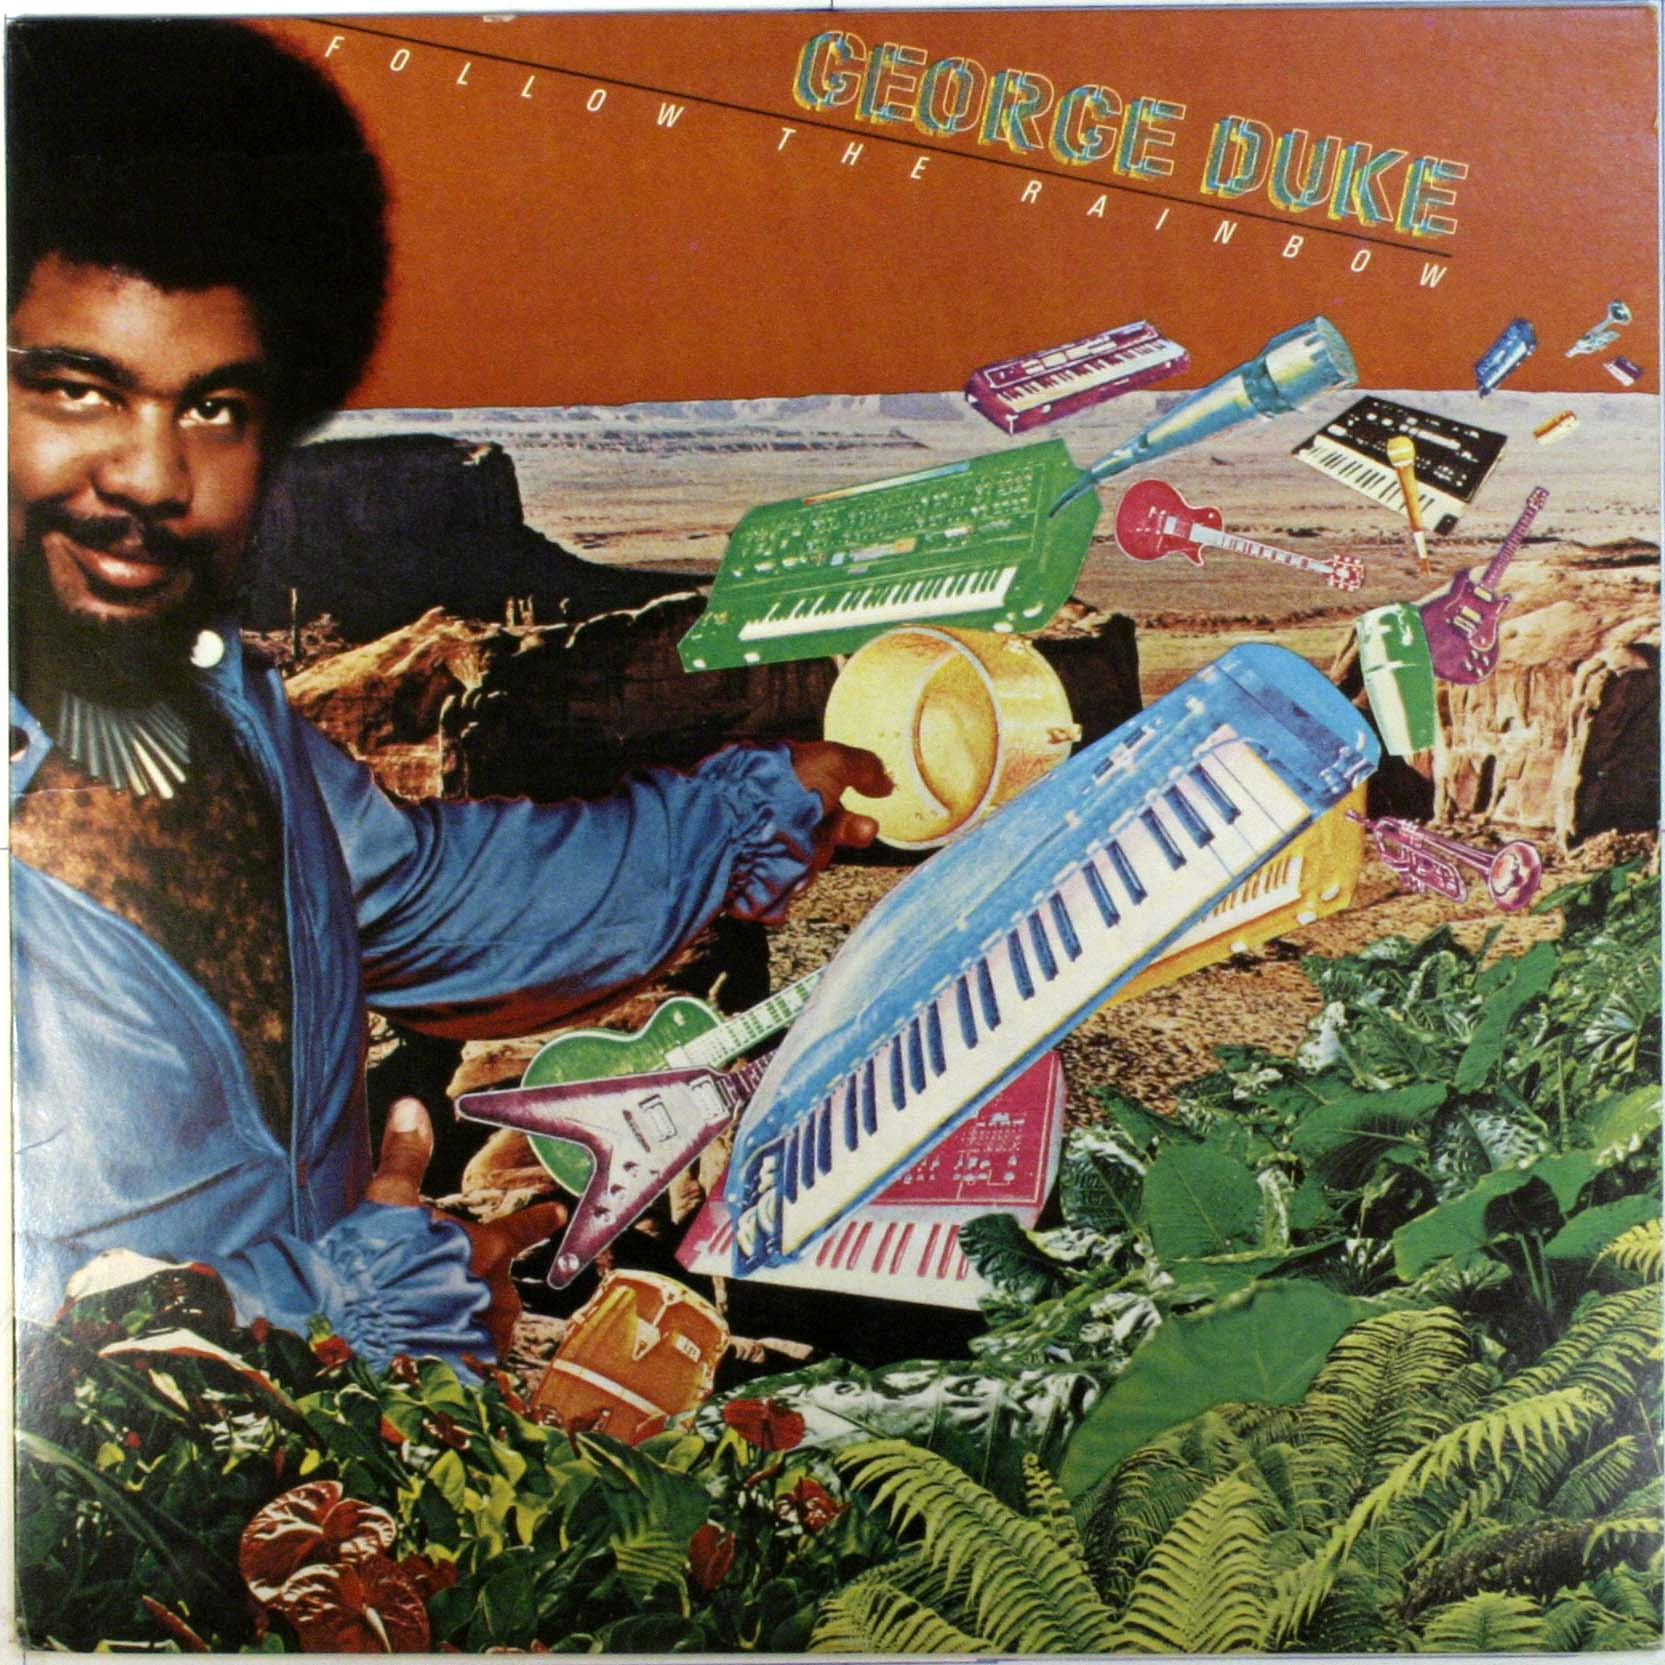 George Duke - Follow The Rainbow Vinyl